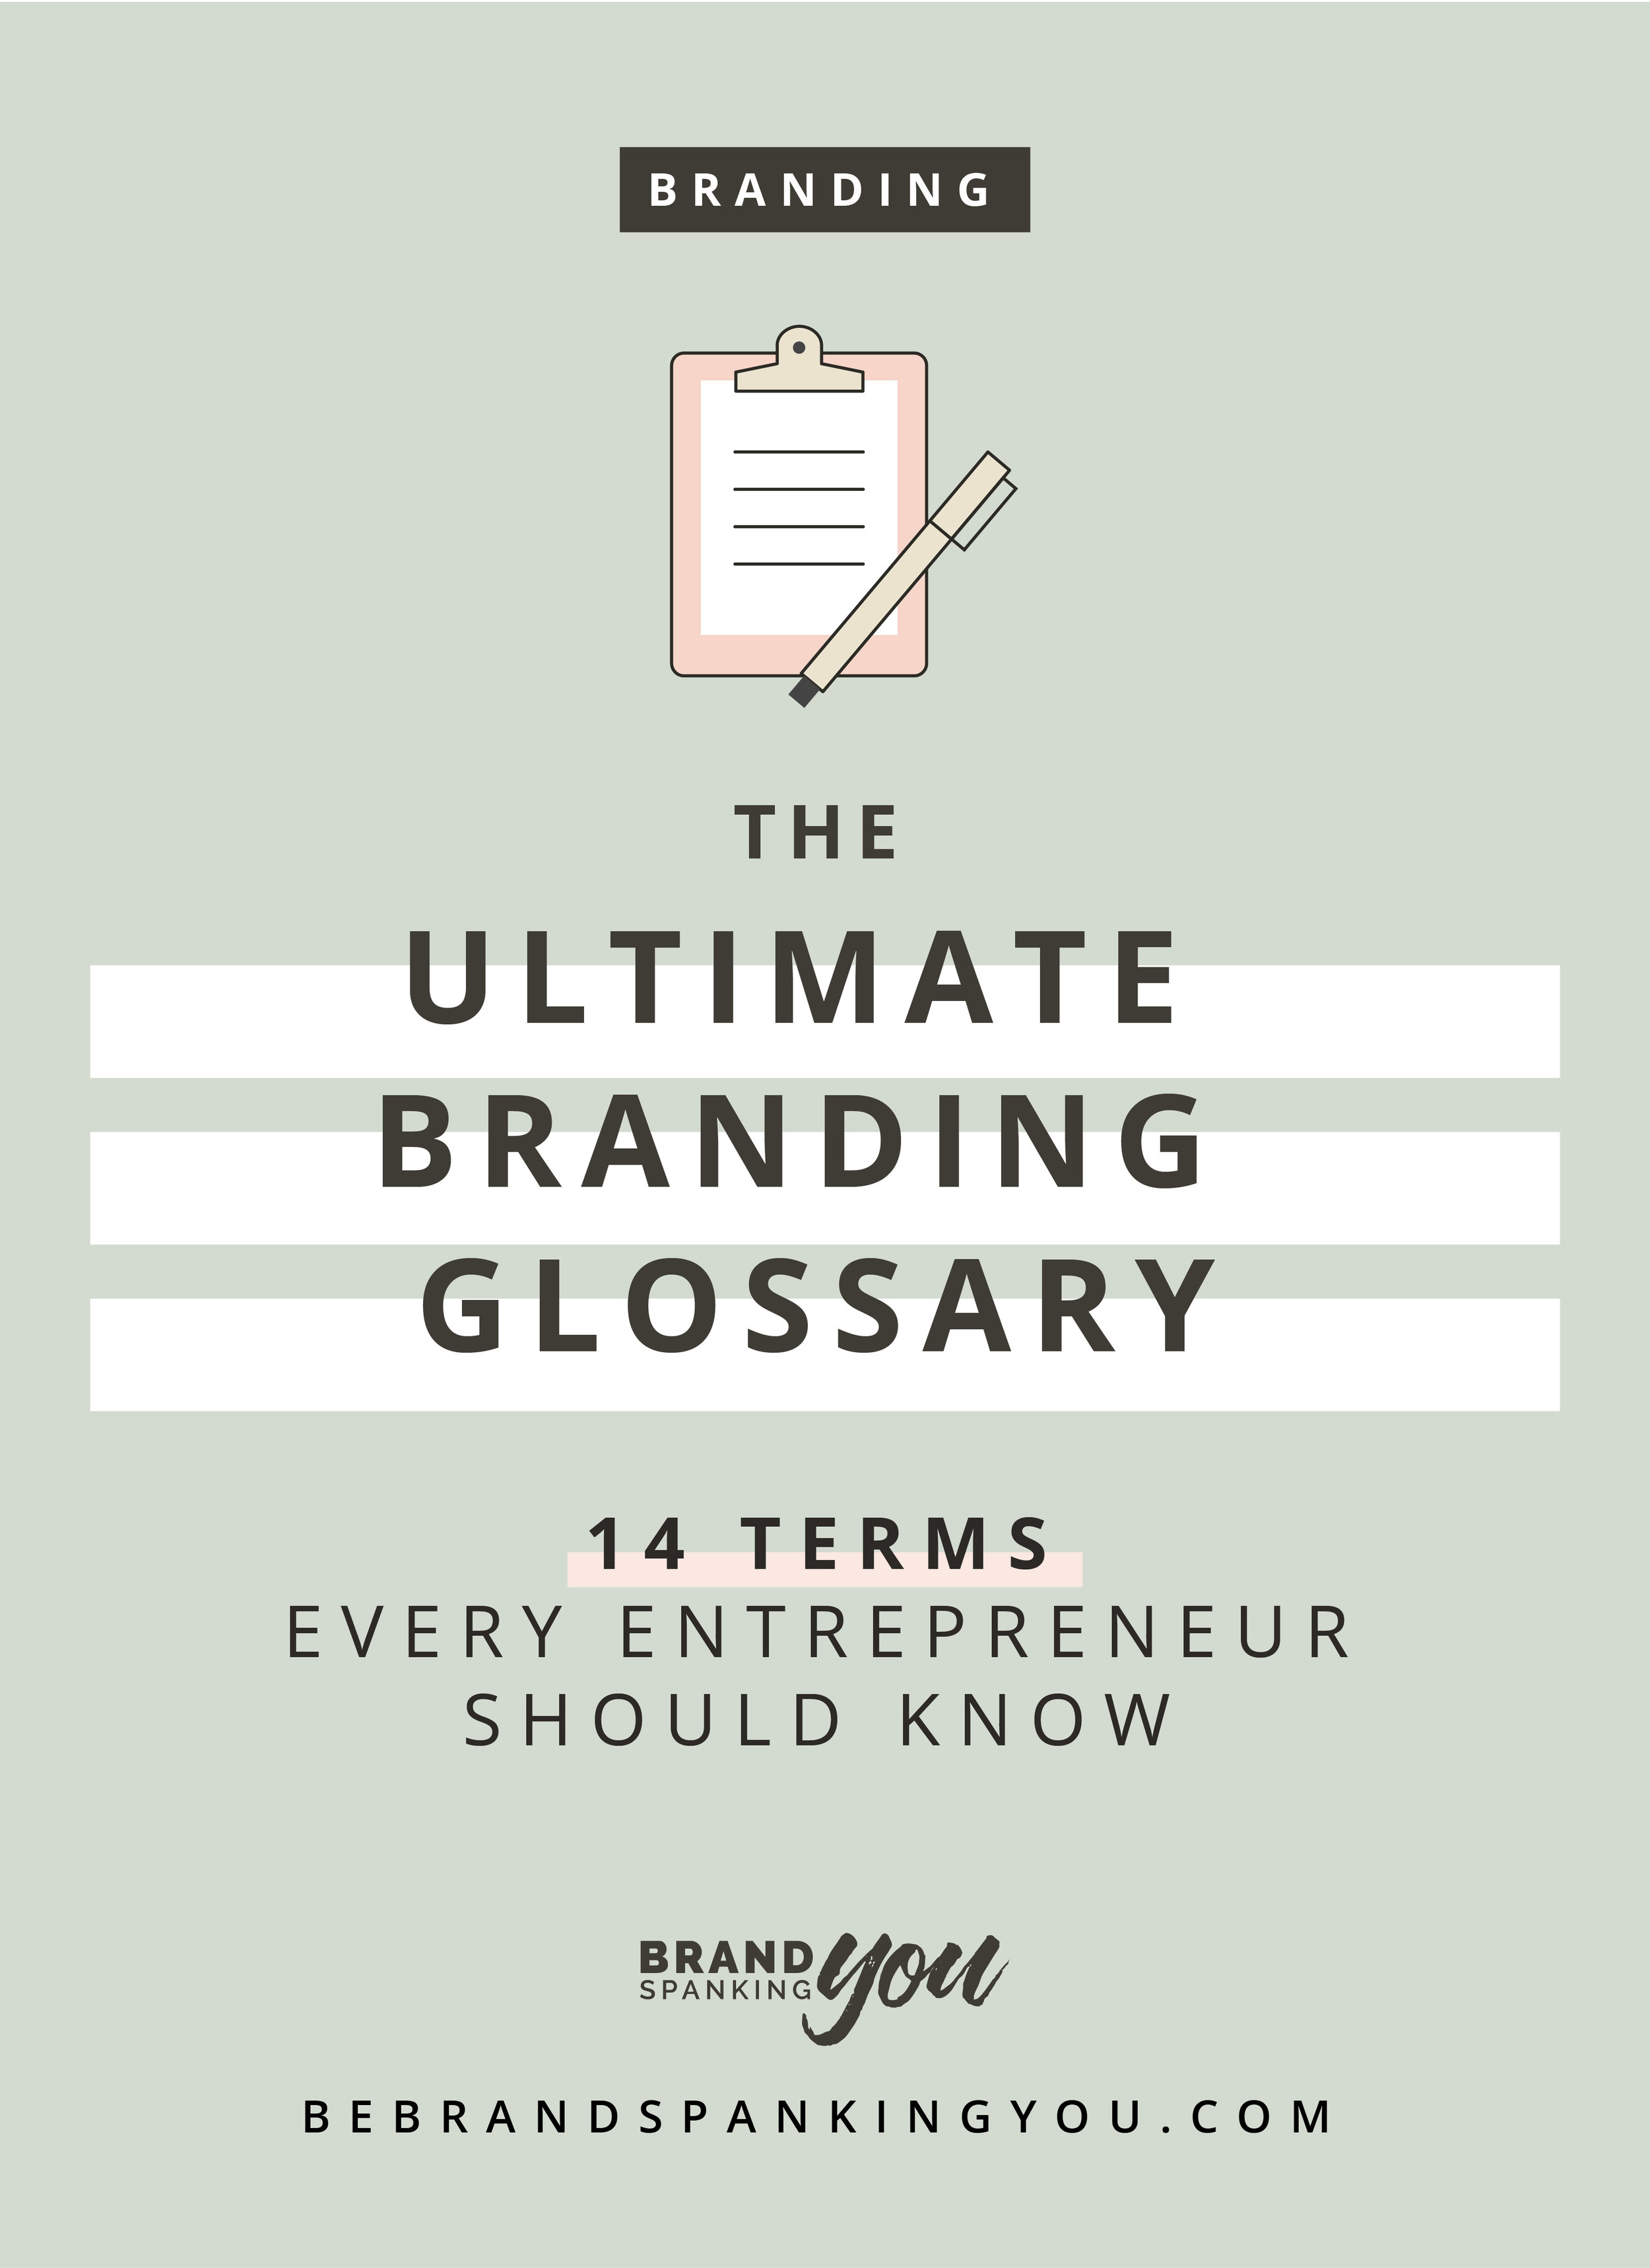 Are you confused about all the branding terminology being thrown around? What is the difference between brand, brand identity, and brand experience anyhow? And aren't mission and vision statements pretty much the same thing? (hint: they're not.) Dive into this guide to discover 14 commonly used branding terms that every entrepreneur or business owner should know!